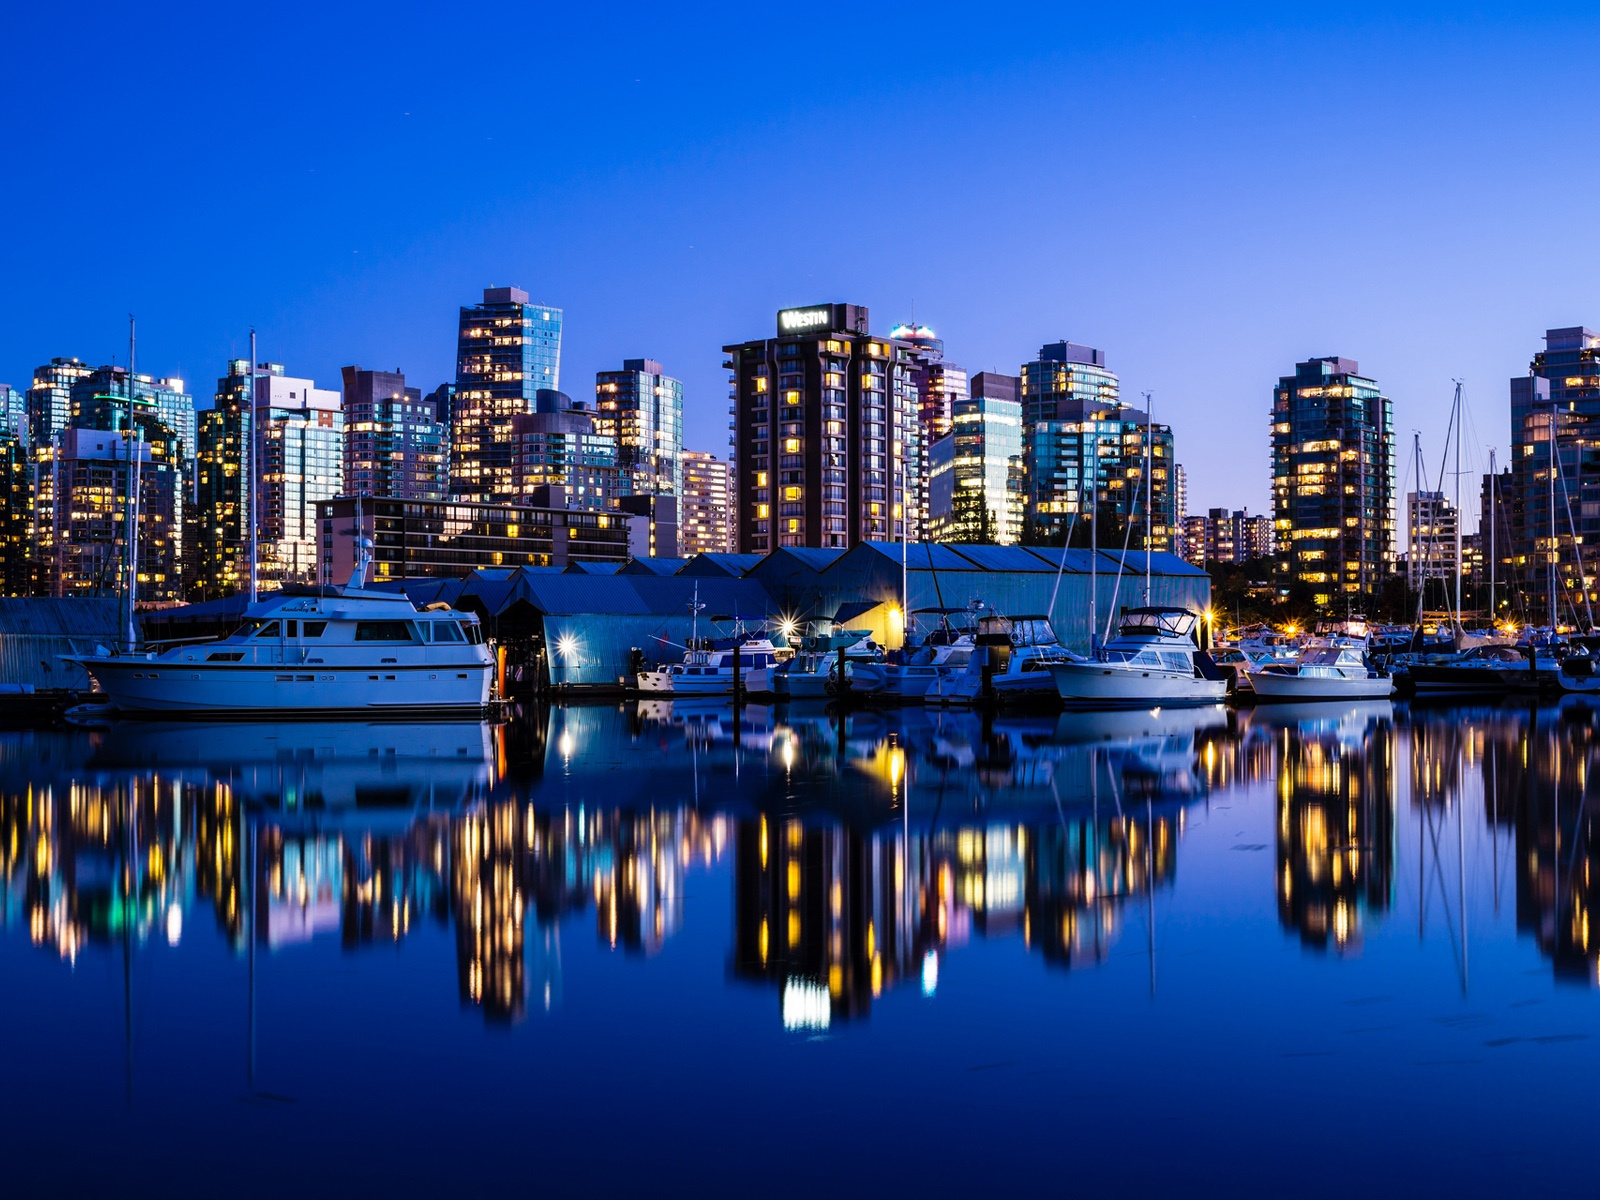 Foggy Night Sky in addition Vancouver Canada City Night Lights Buildings Sea Yacht Reflection 1600x1200 also Concert marina kaye 04102014 besides Fenway Park Black And White as well 47245. on night wallpaper